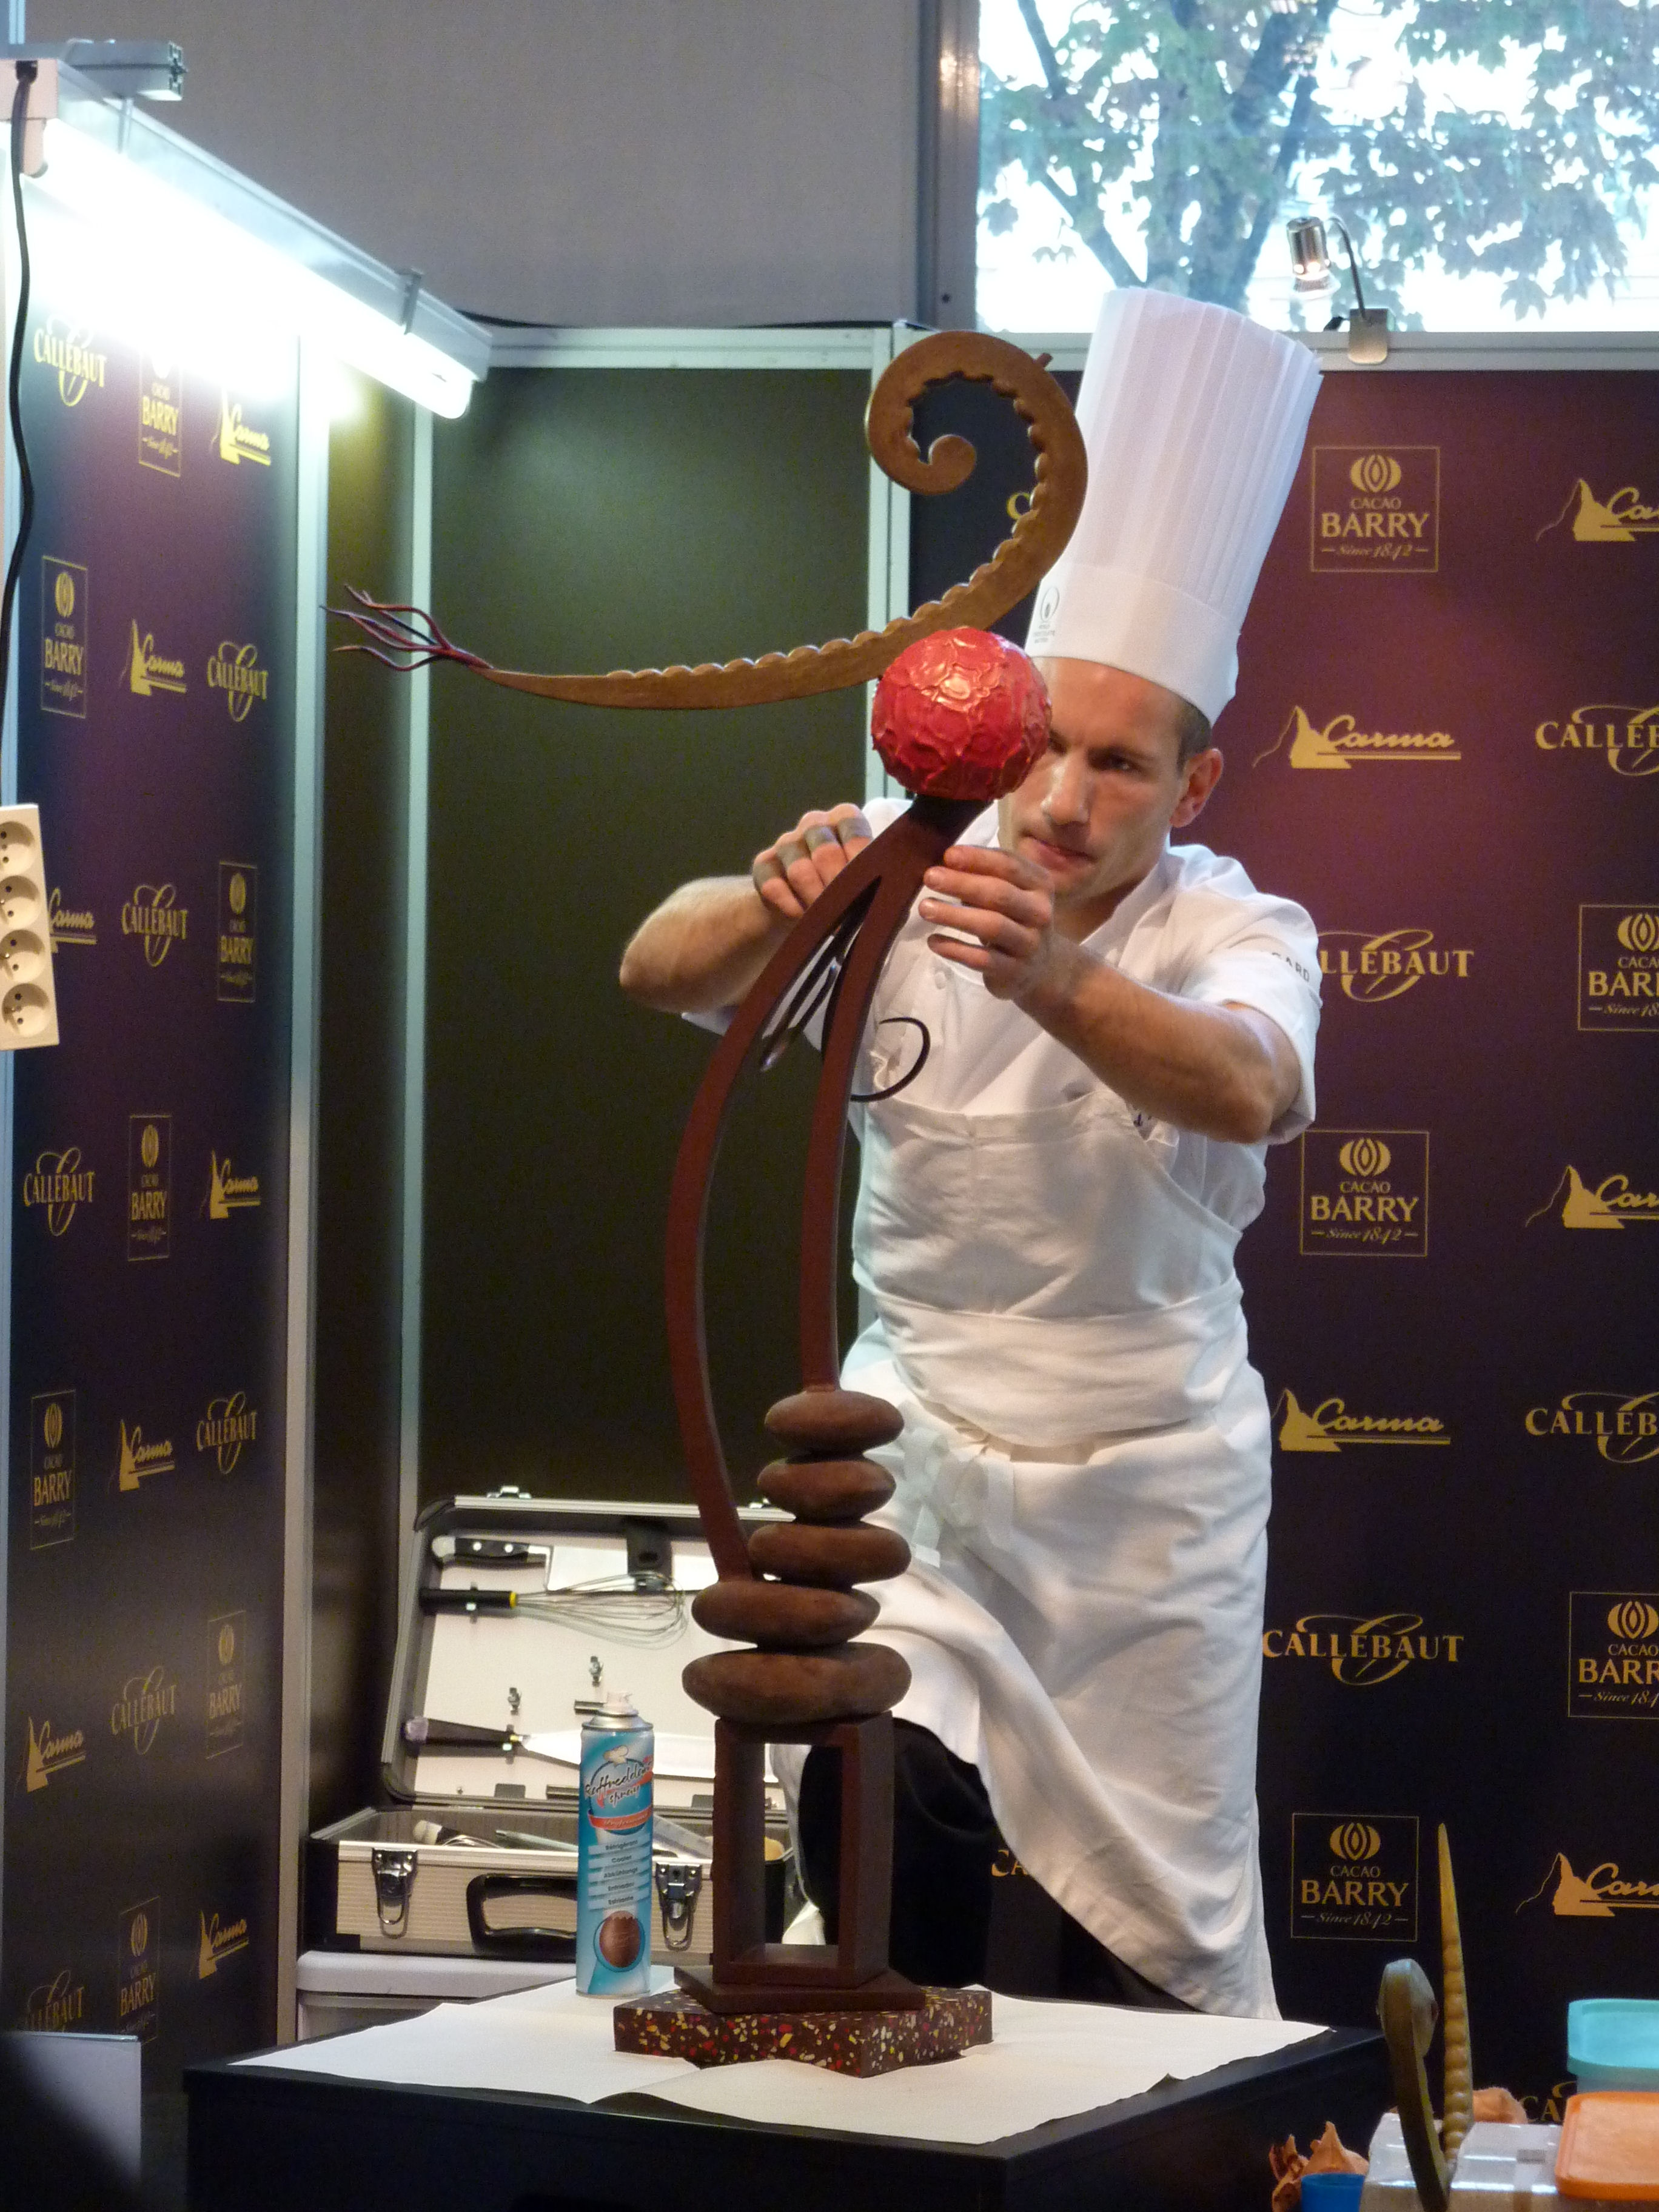 Salon Du Chocolat Nantes Delicious Memories Of The Salon Du Chocolat Paris Insights The